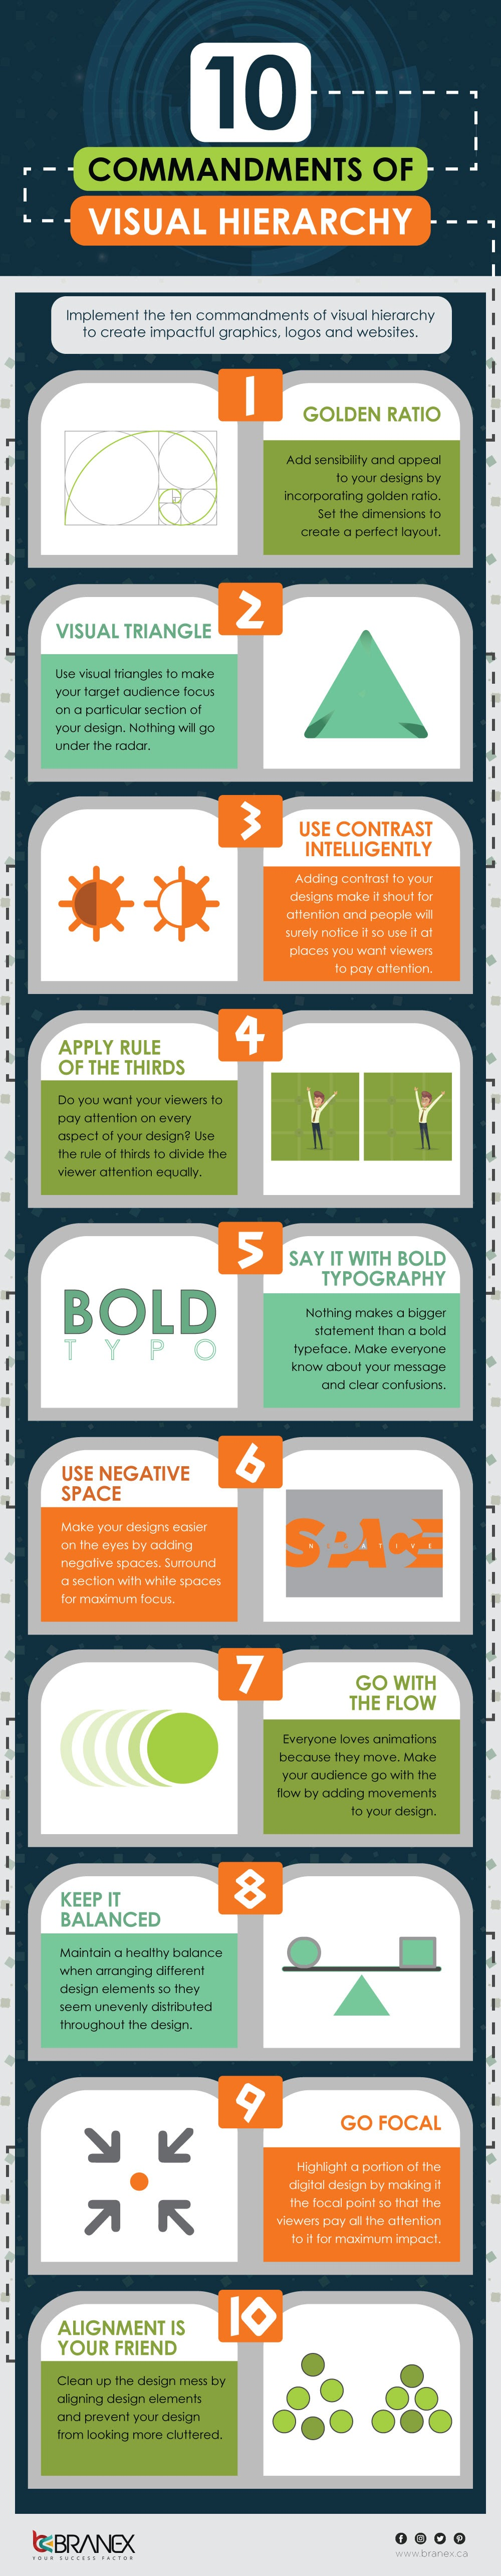 10 Commandments of Visual Hierarchy #Infographic